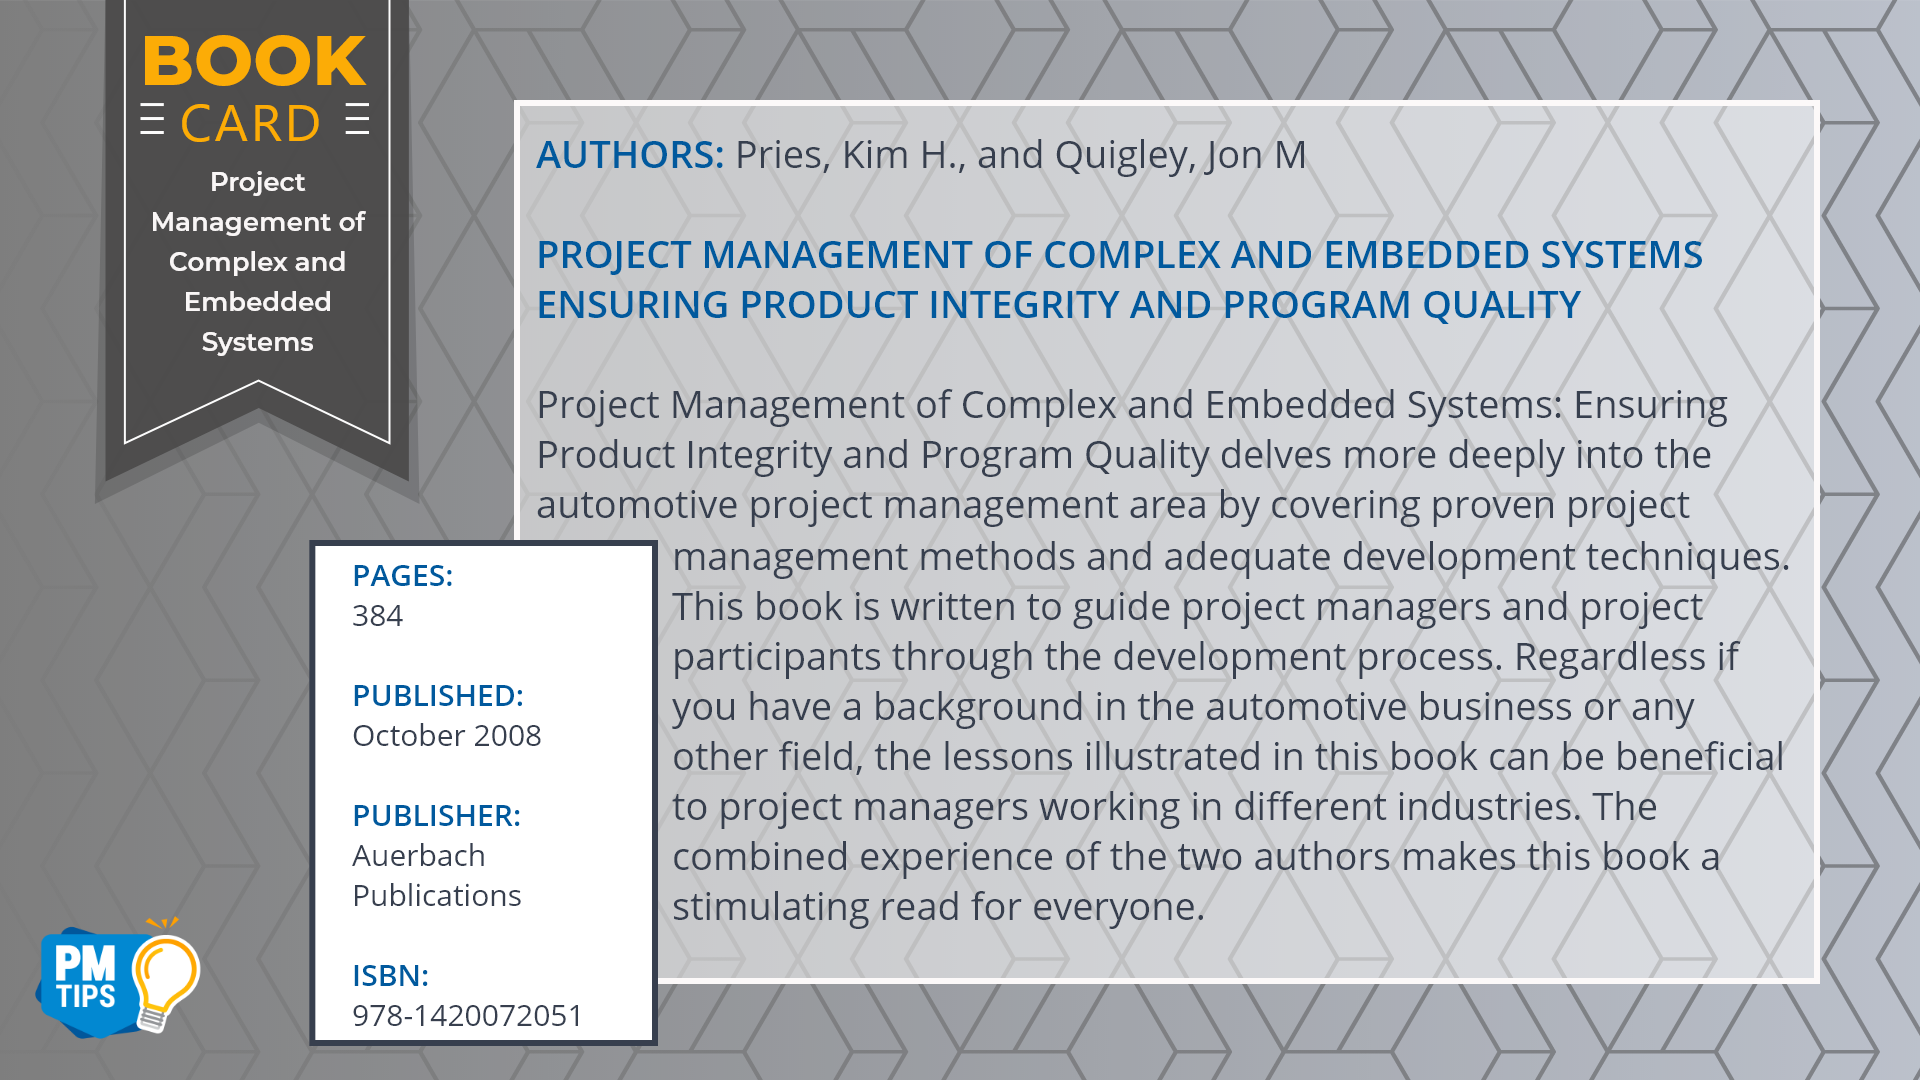 Book Card Project Management of Complex and Embedded Systems: Ensuring Product Integrity and Program Quality